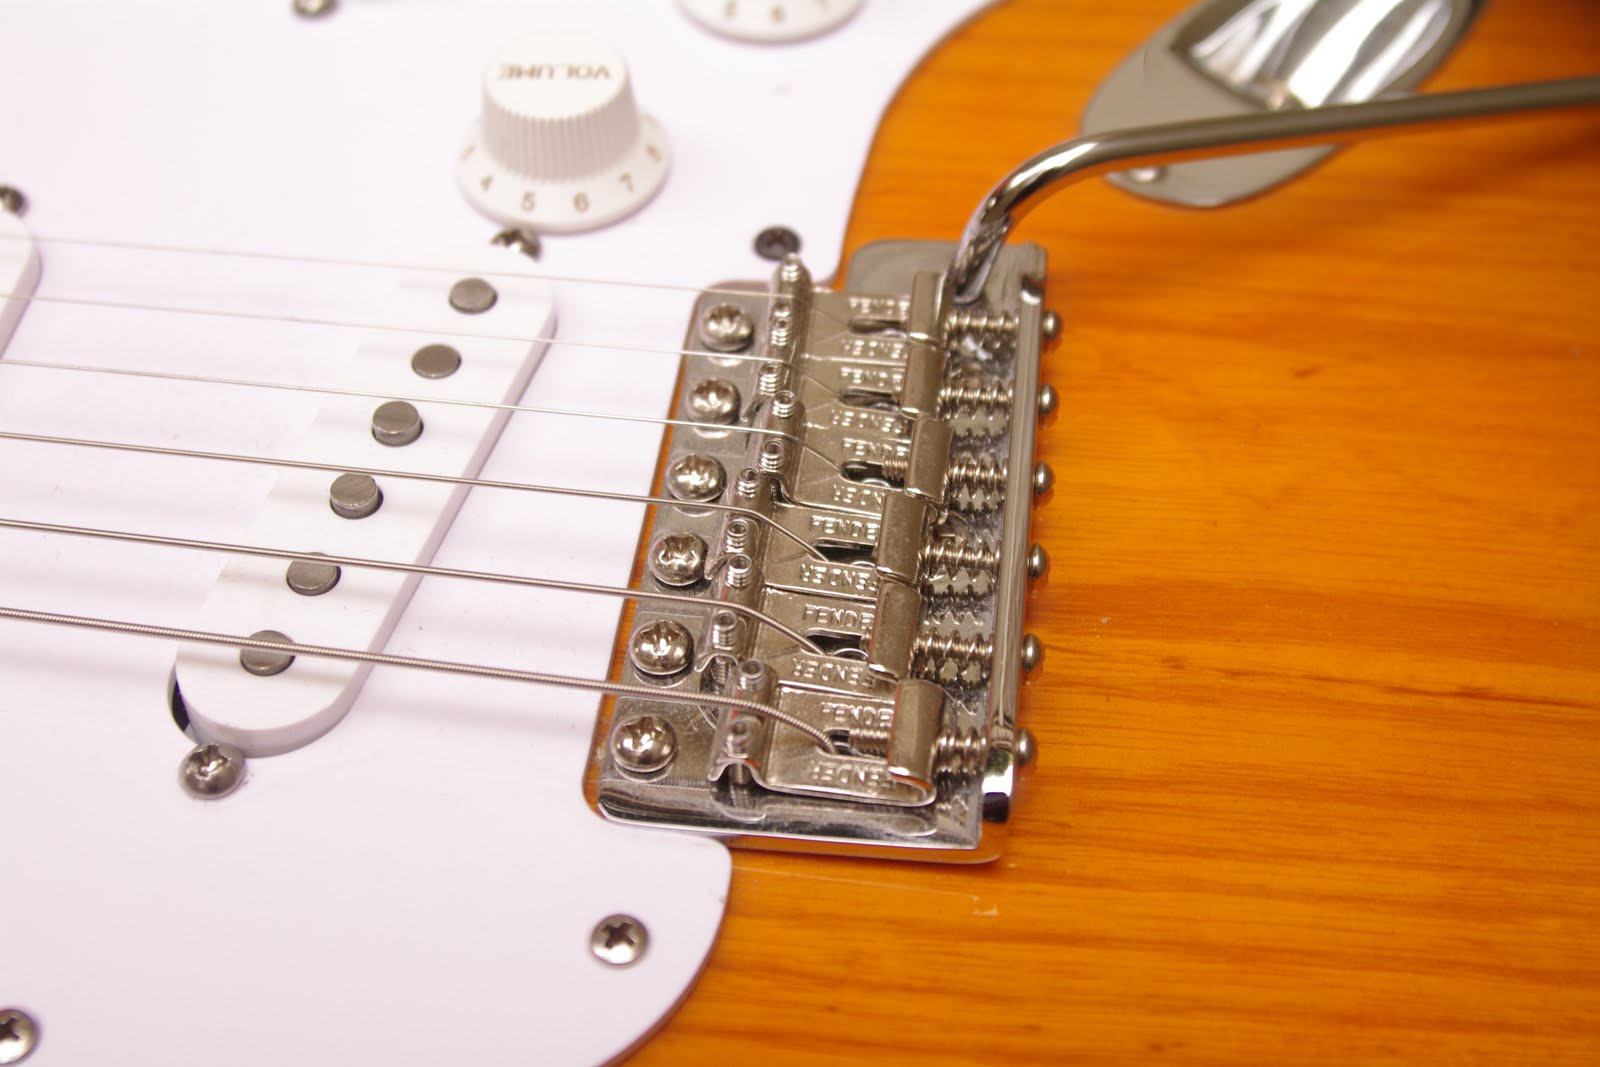 Schuyler Dean Pickups 2011 Emg P Bass Wiring Reverb The Stratocaster Tremolo Pivots On Six Body Screws And Is Tensioned By Three